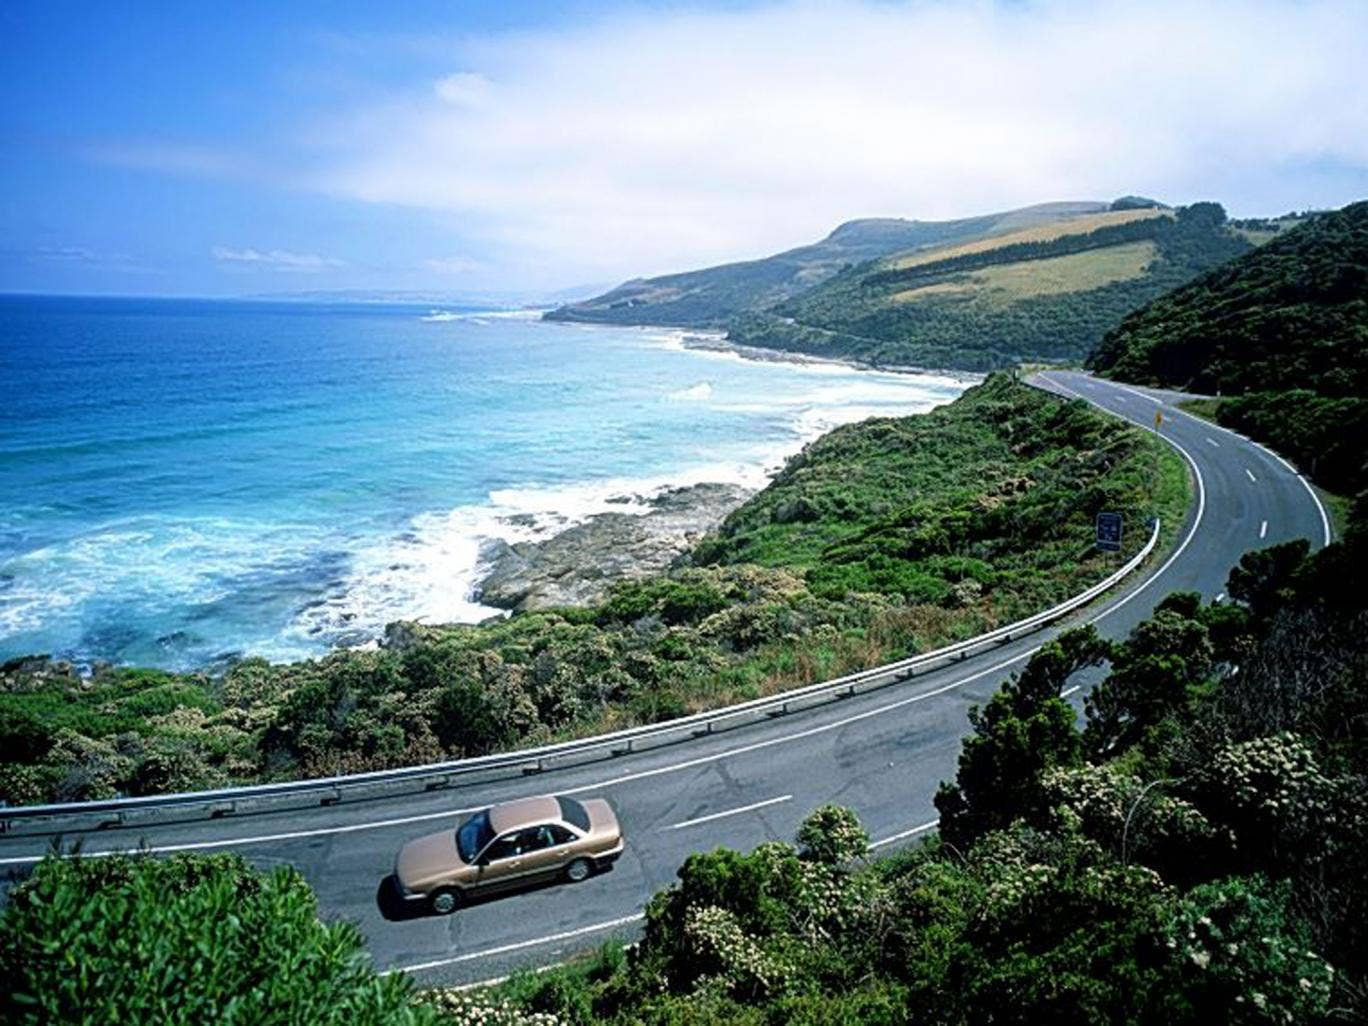 Wave hello: the Great Ocean Road was a highlight in Australia